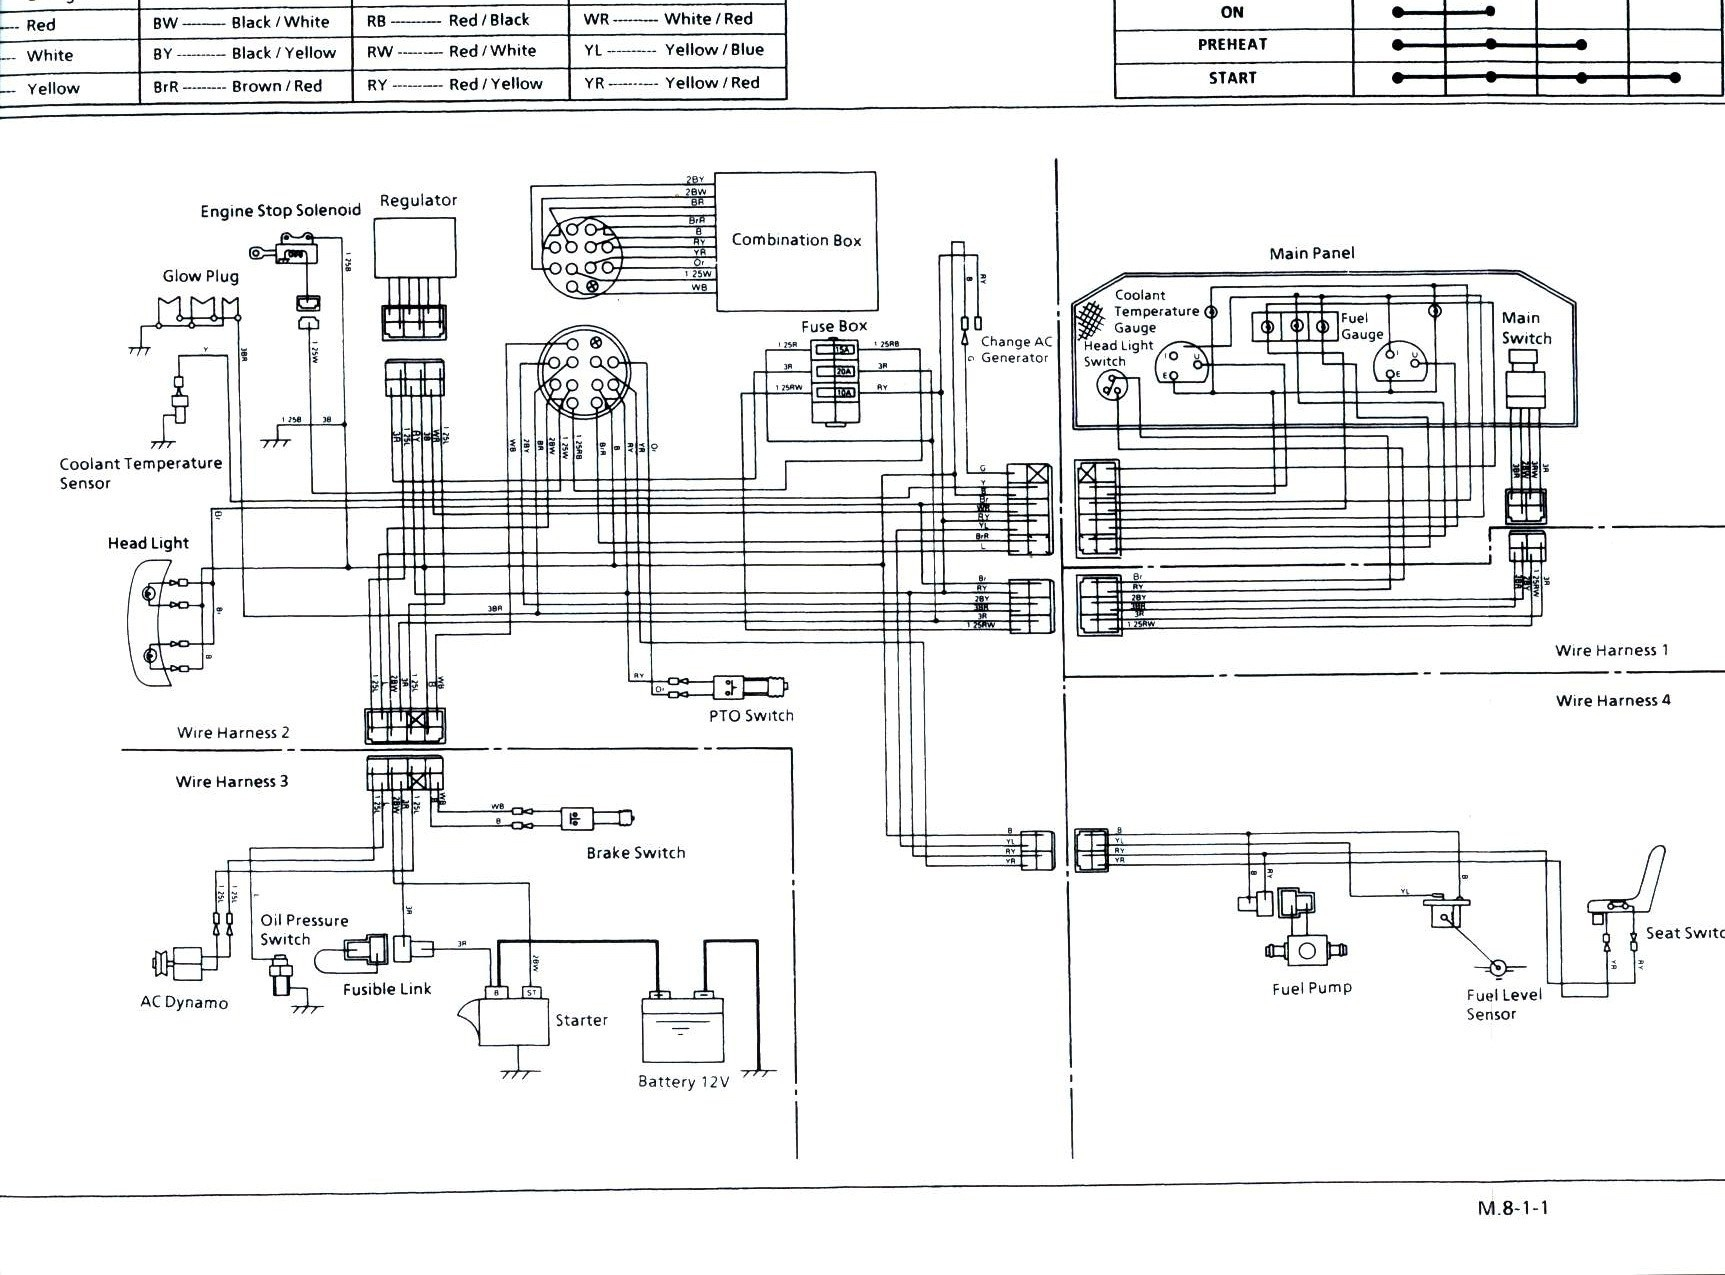 kubota m7040 radio wiring diagram wiring schematic diagram Kubota M7040 Tractor kubota stereo wiring diagram best wiring library kubota m7040 loader kubota m7040 radio wiring diagram good